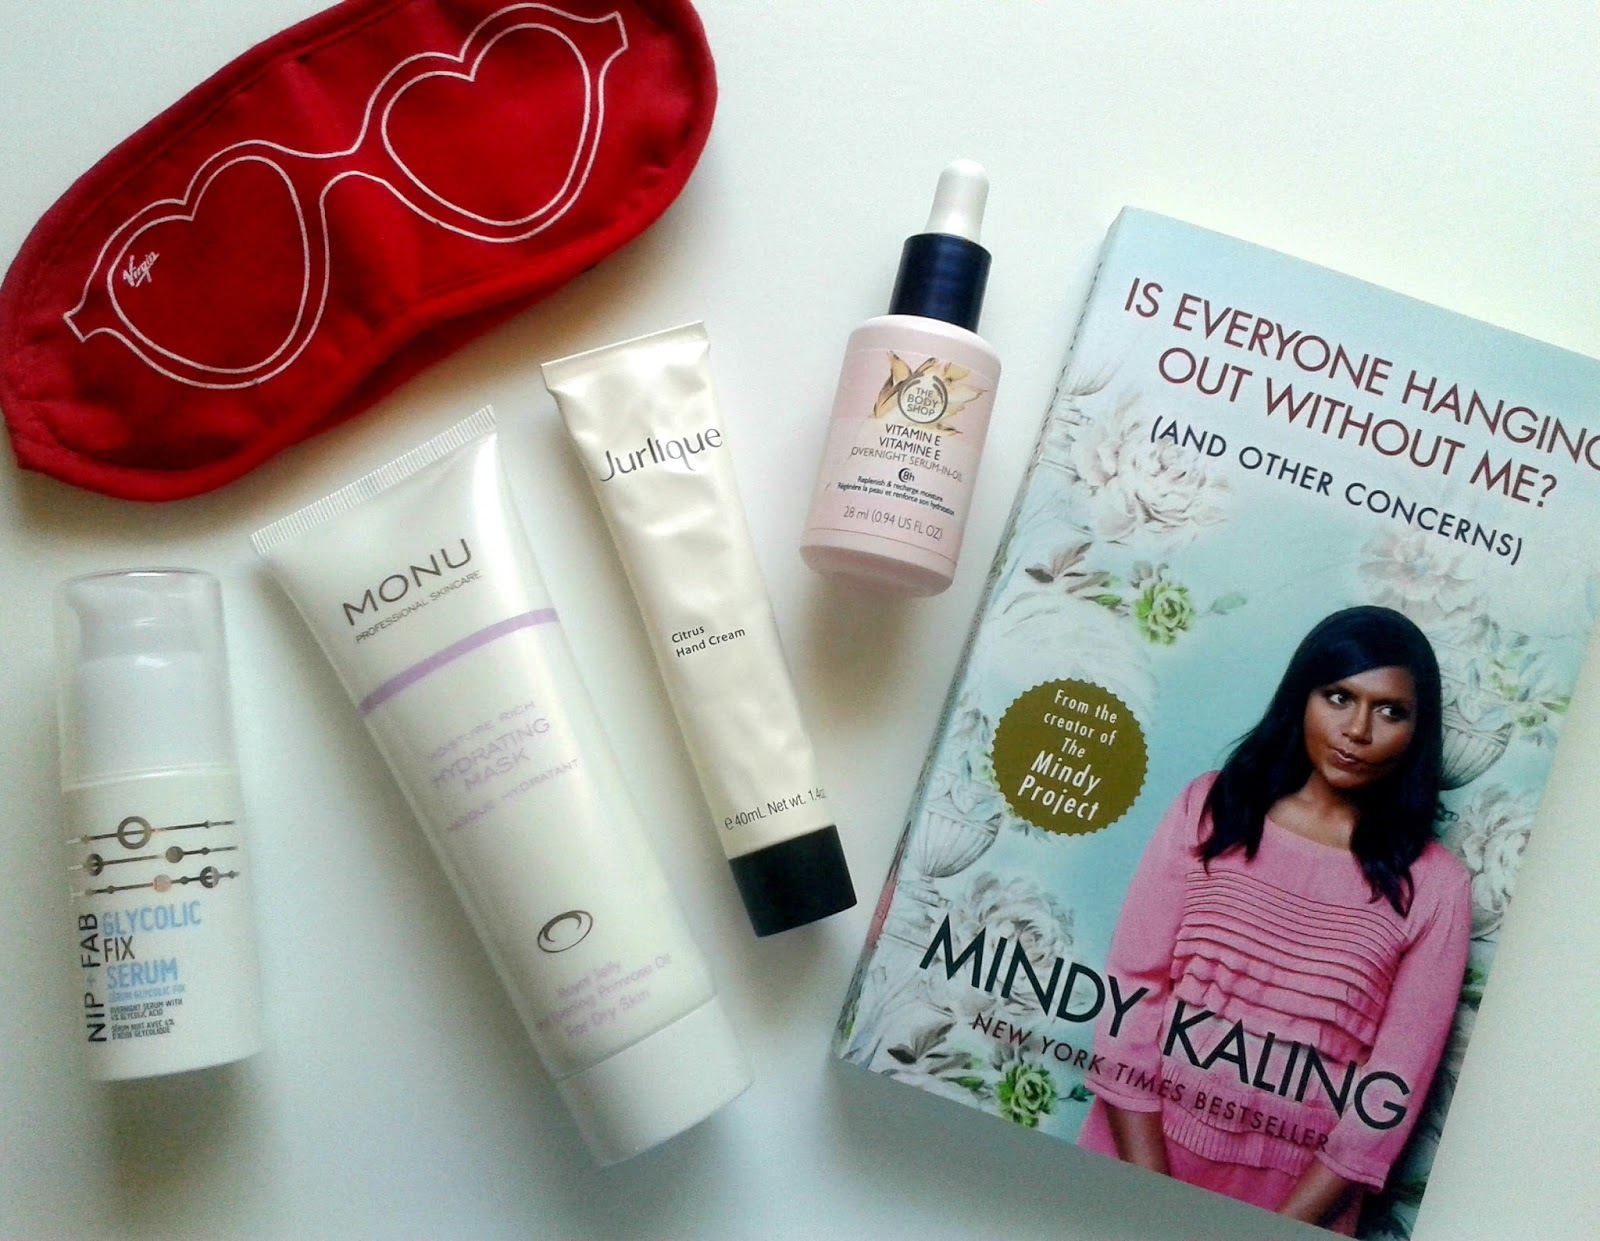 My Bedtime Essentials Nip + Fab The Body Shop Jurlique Monu Skincare Minday Kaling Beauty Review